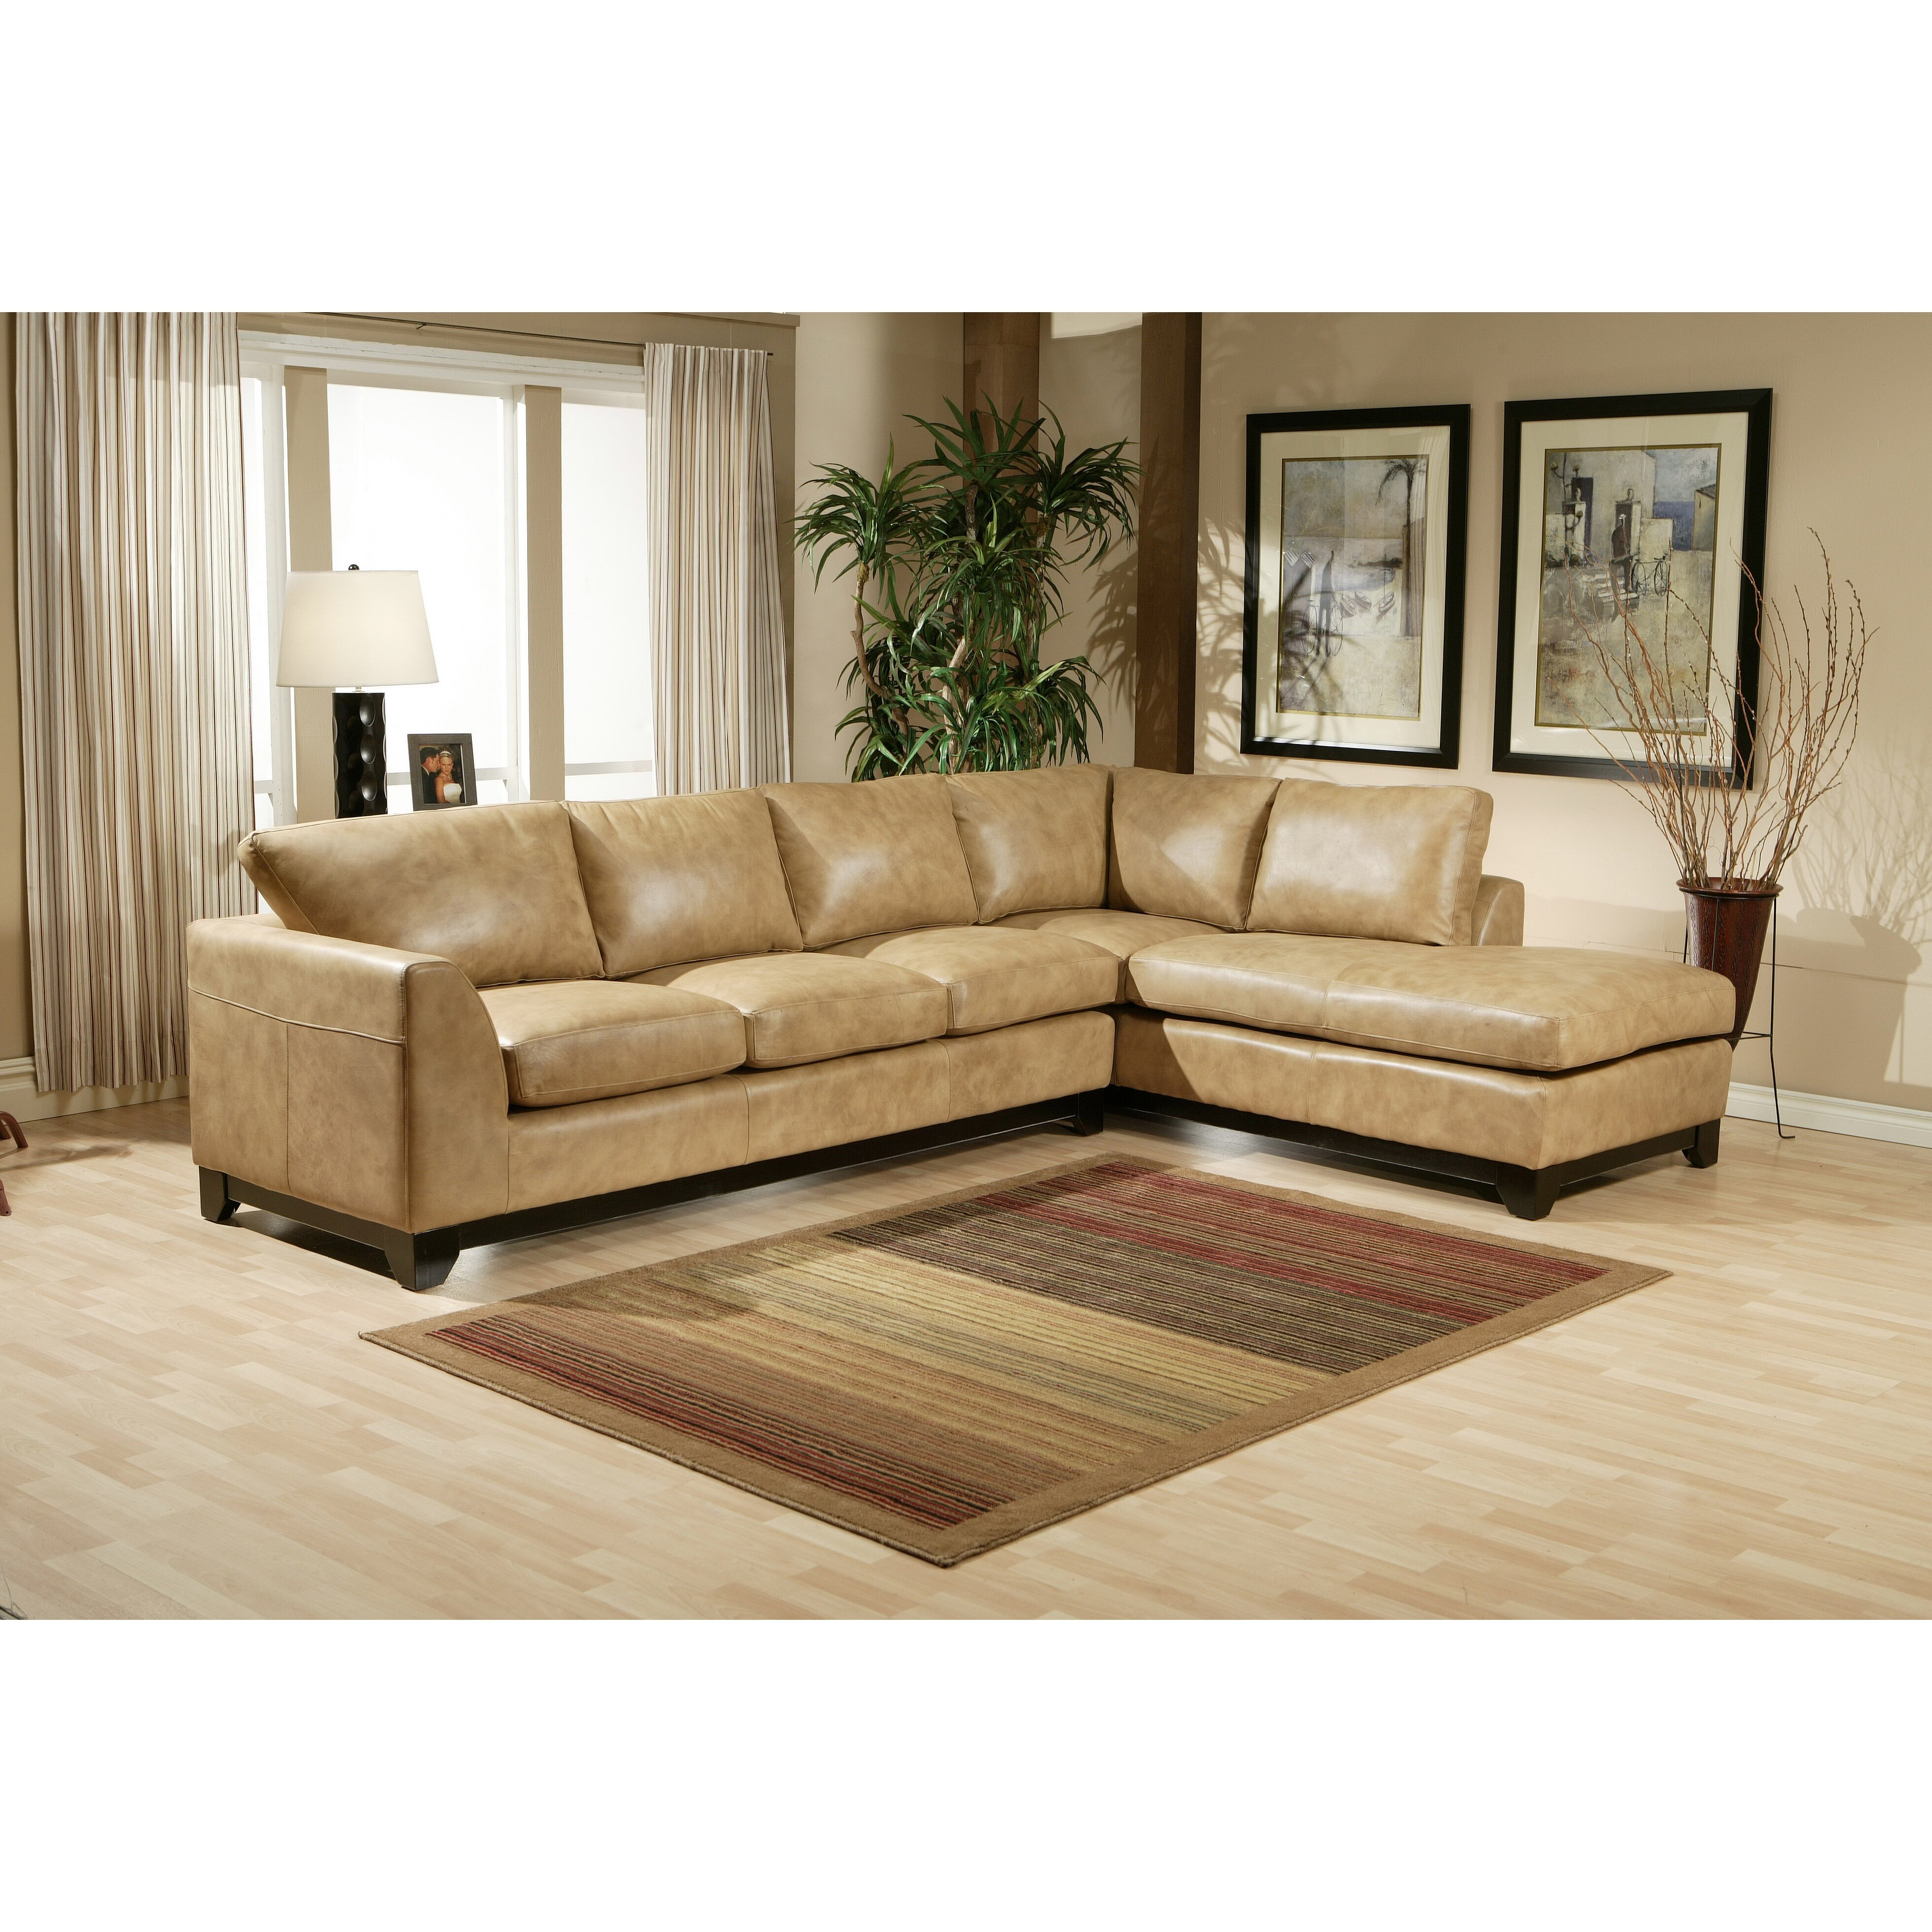 Furniture living room furniture living room sets omnia furniture